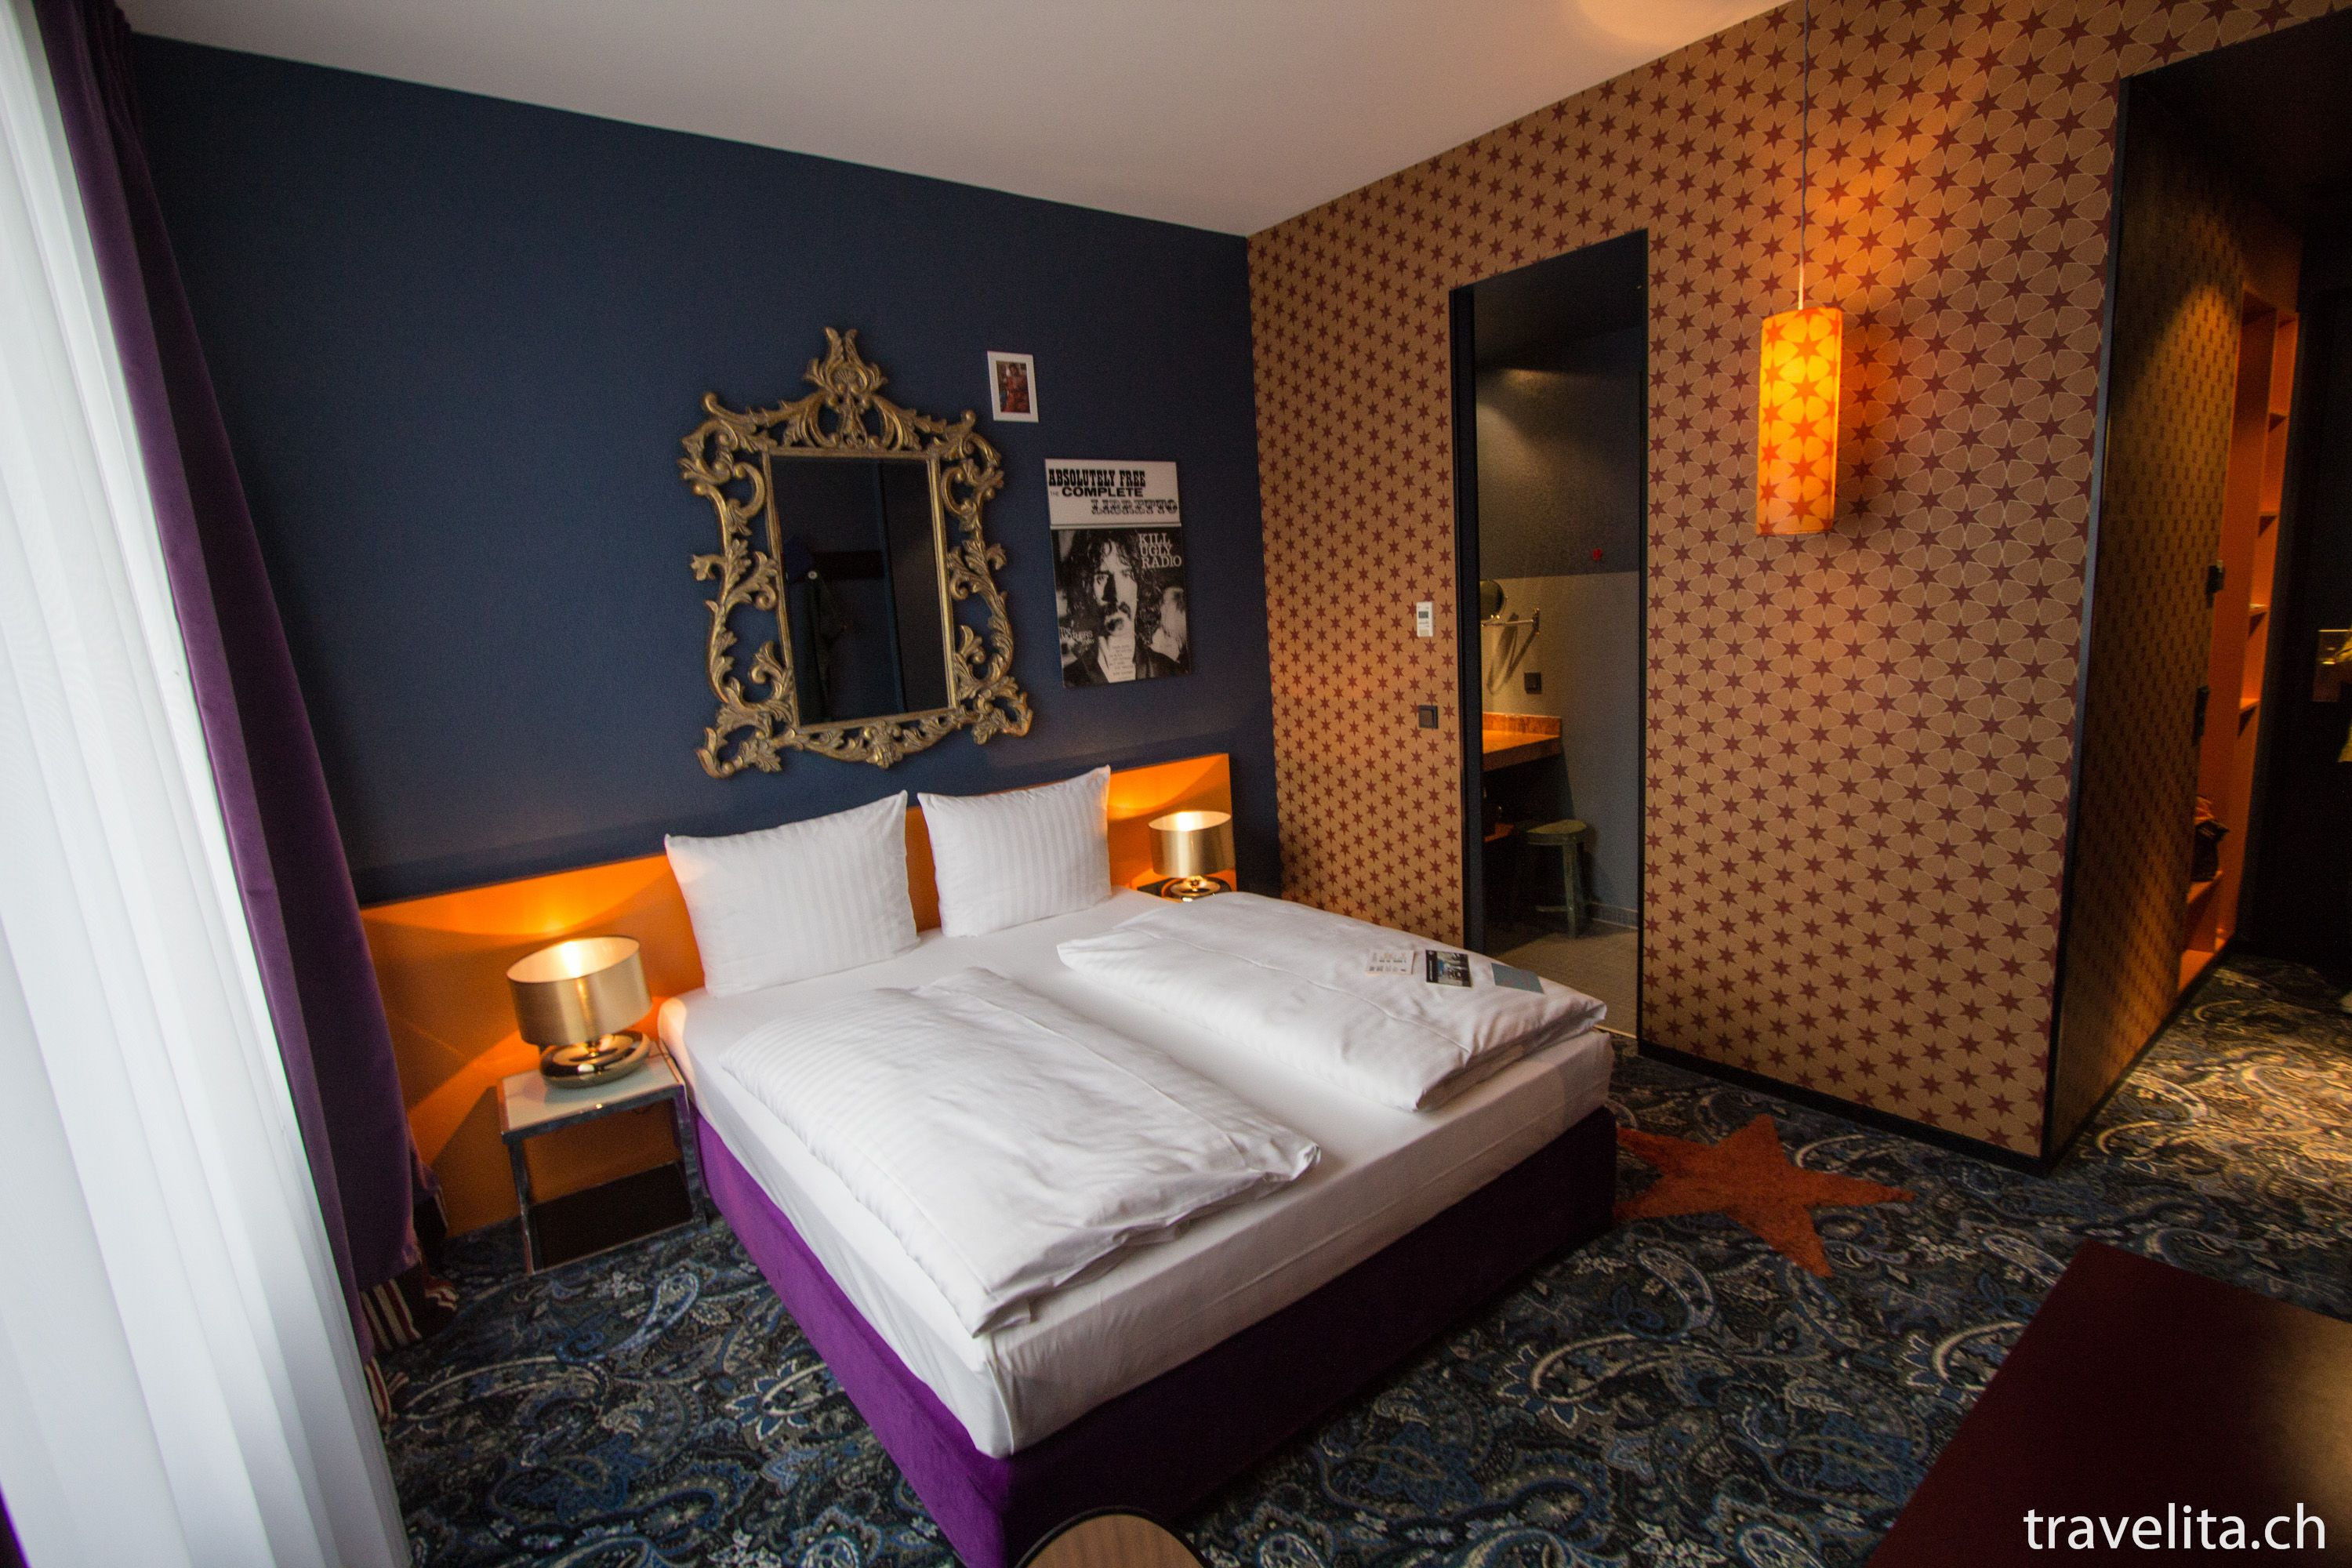 A Medium Sized Room In The 25hours Hotel Levis In Frankfurt Dream Hotels Home Decor Hotel